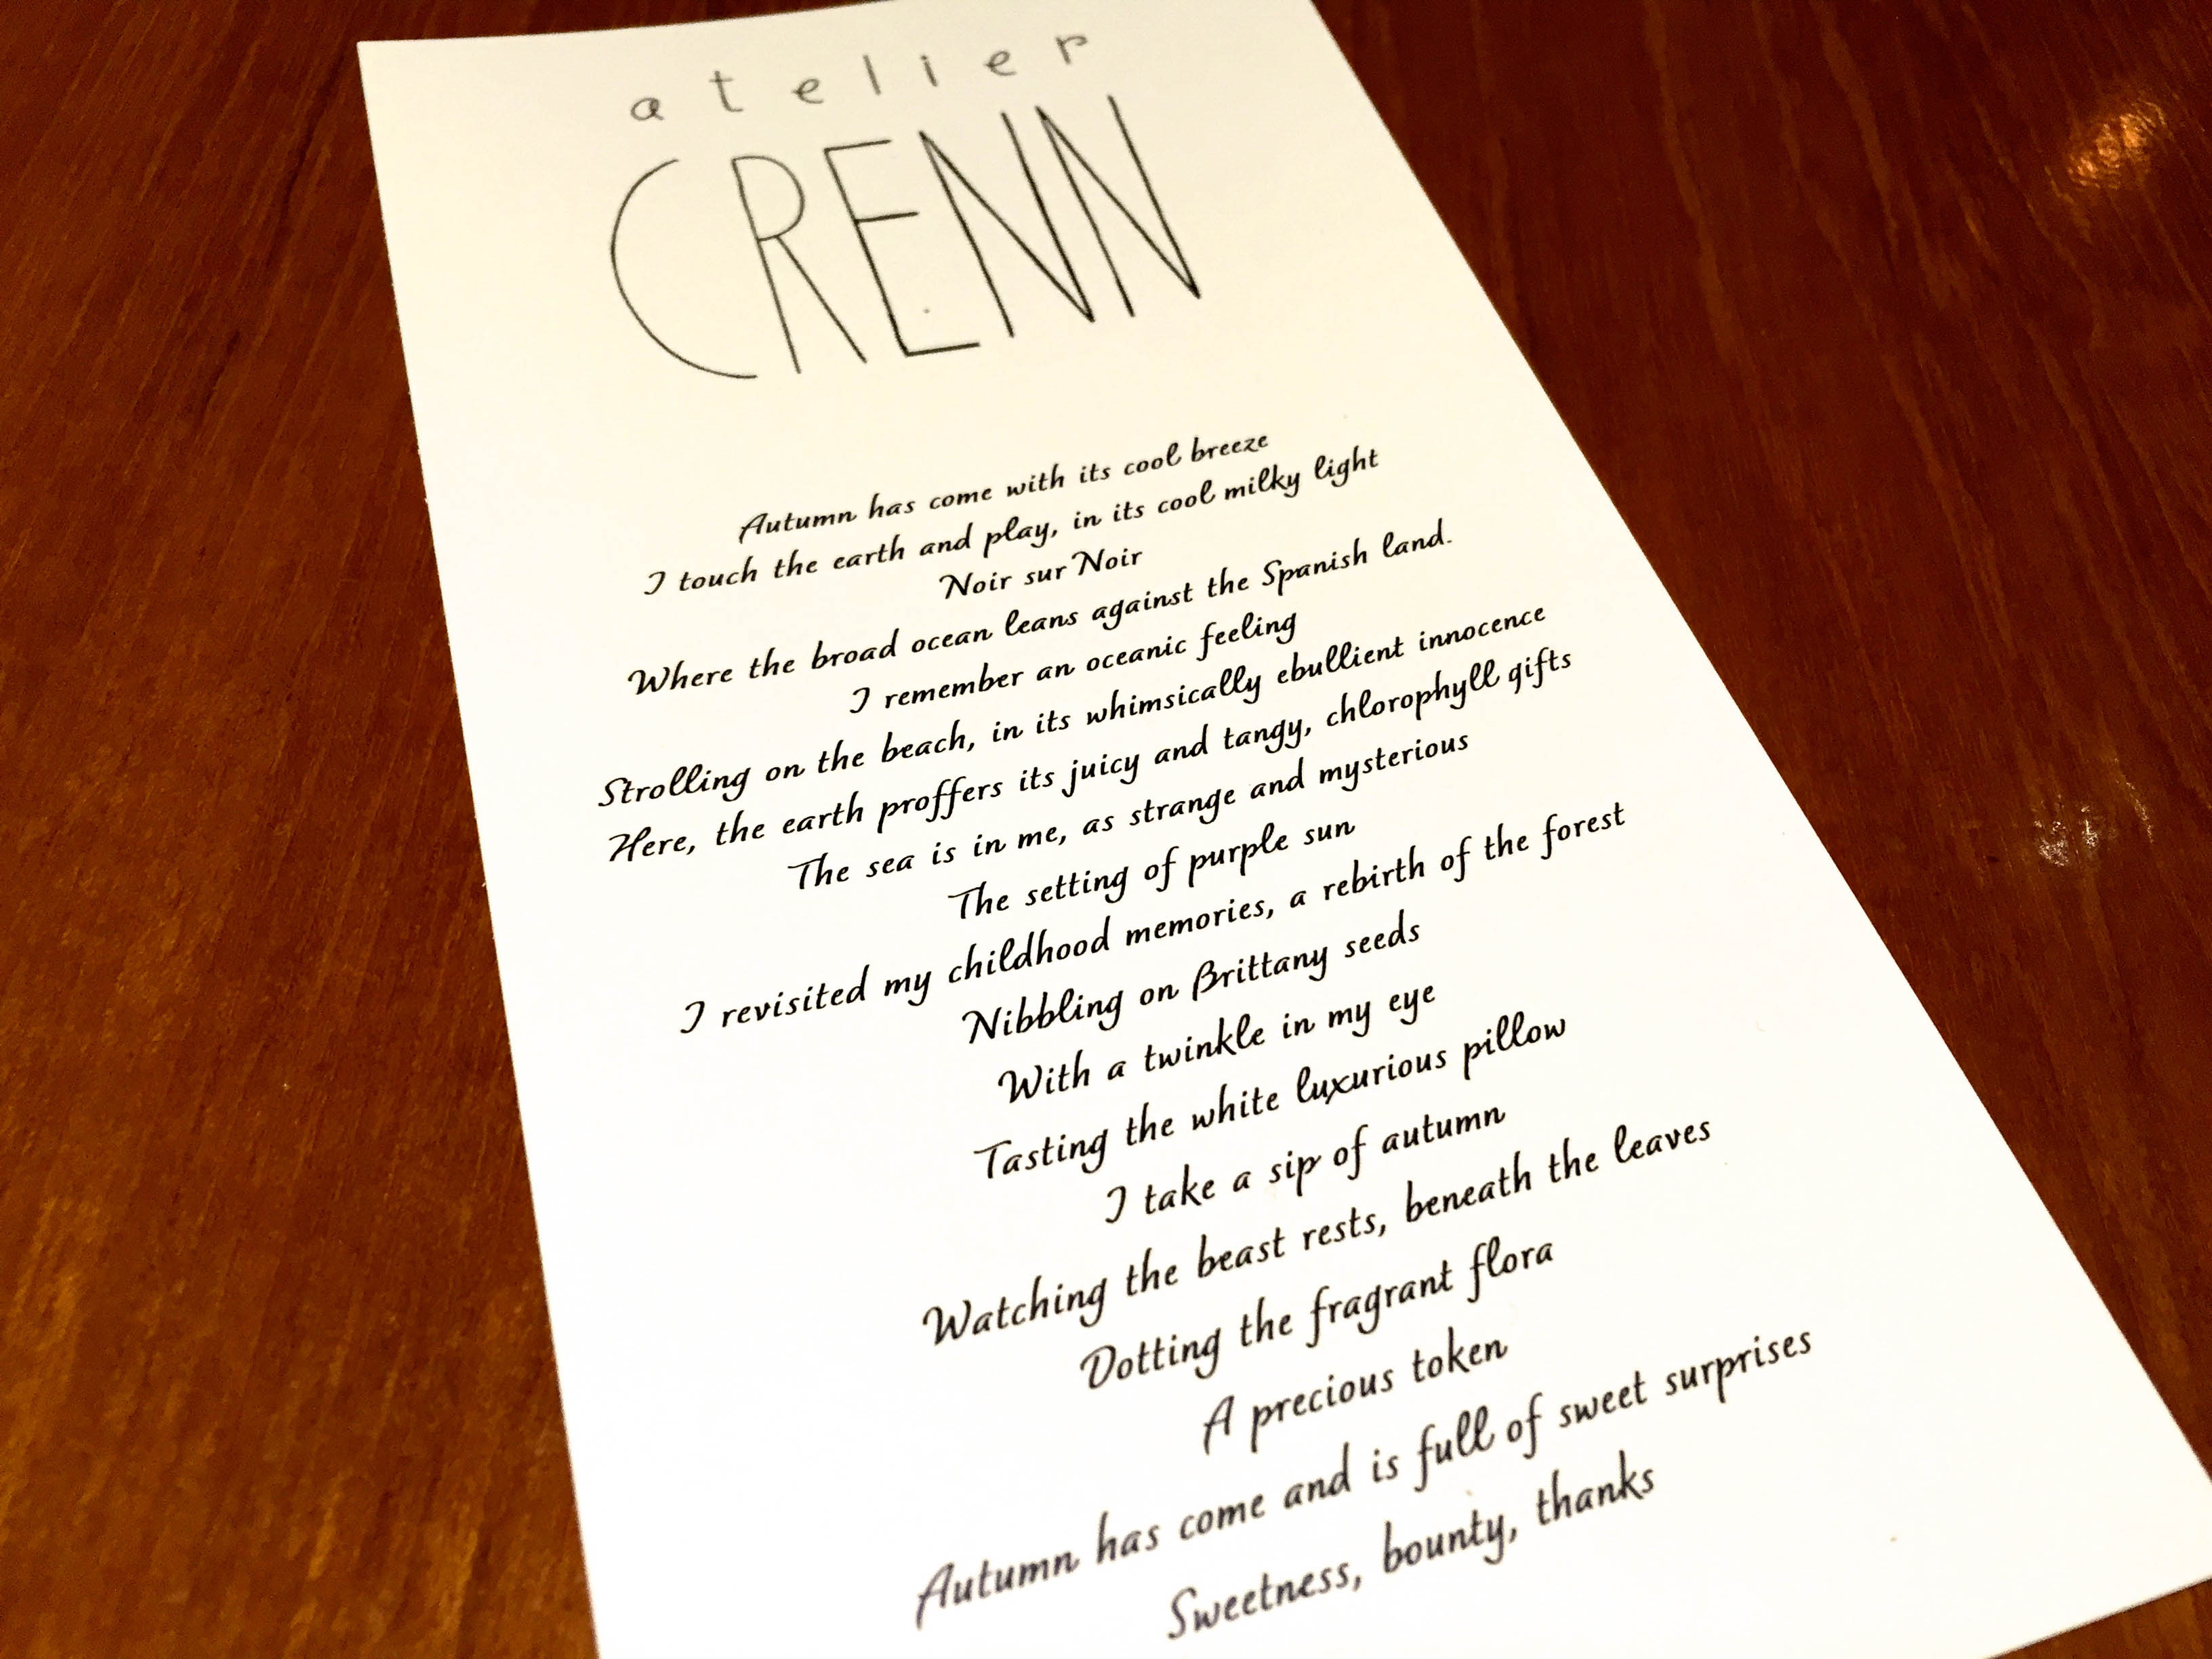 Atelier Seewhy Wanna See What Art Food Poetry Looks Like Atelier Crenn Cyn